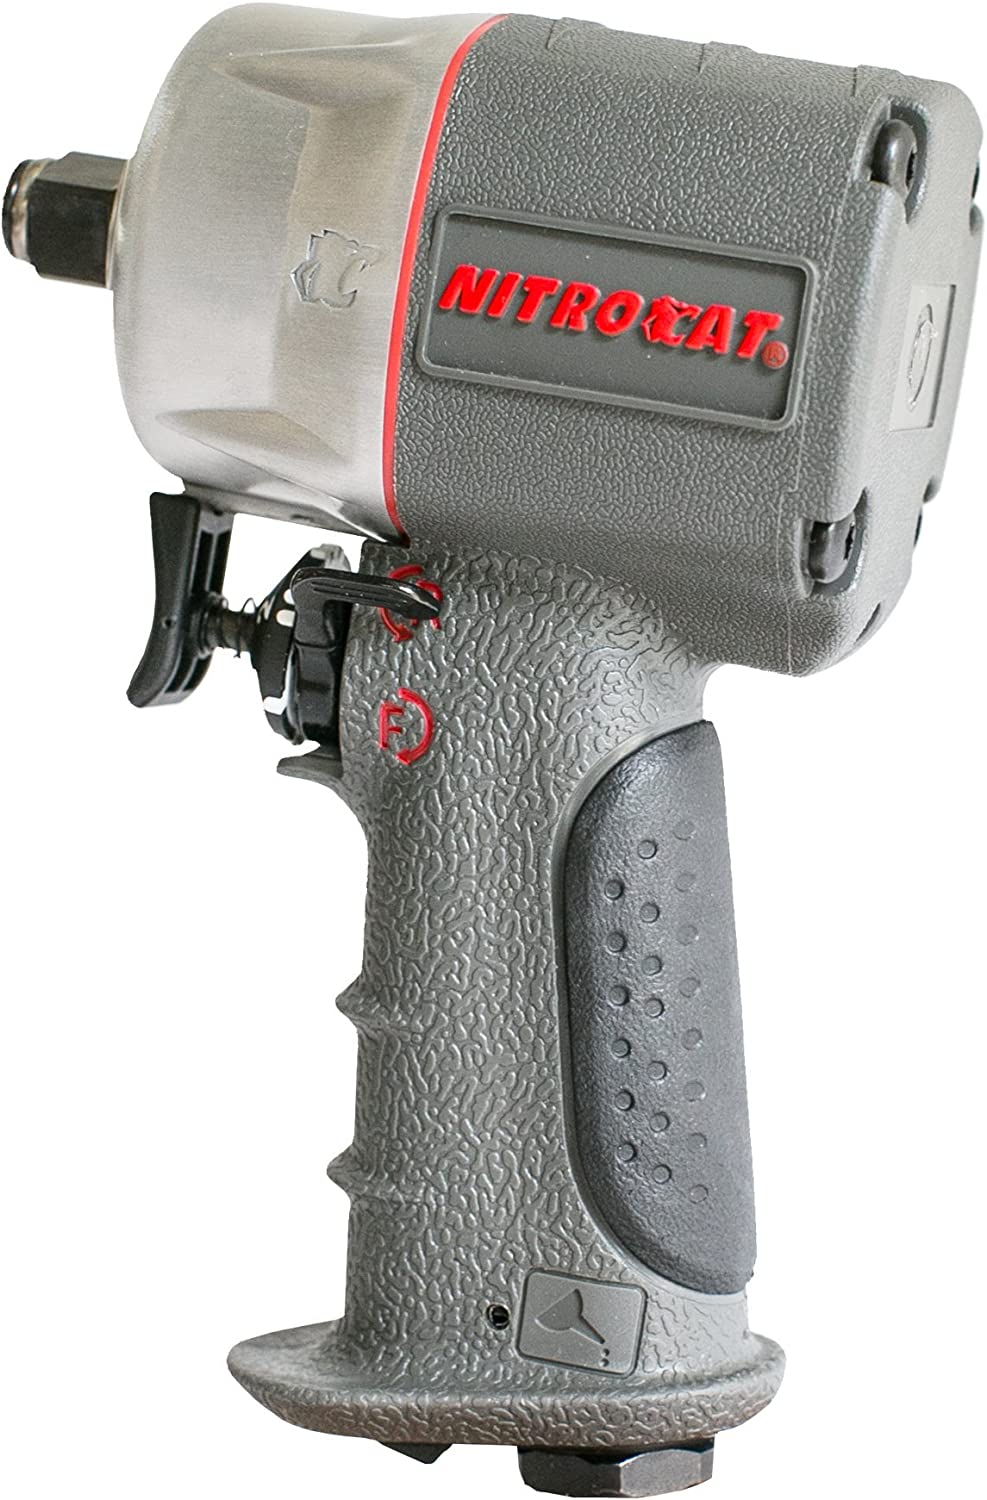 "best air impact wrench: AIRCAT 1/2"" Compact Composite Impact Wrench"